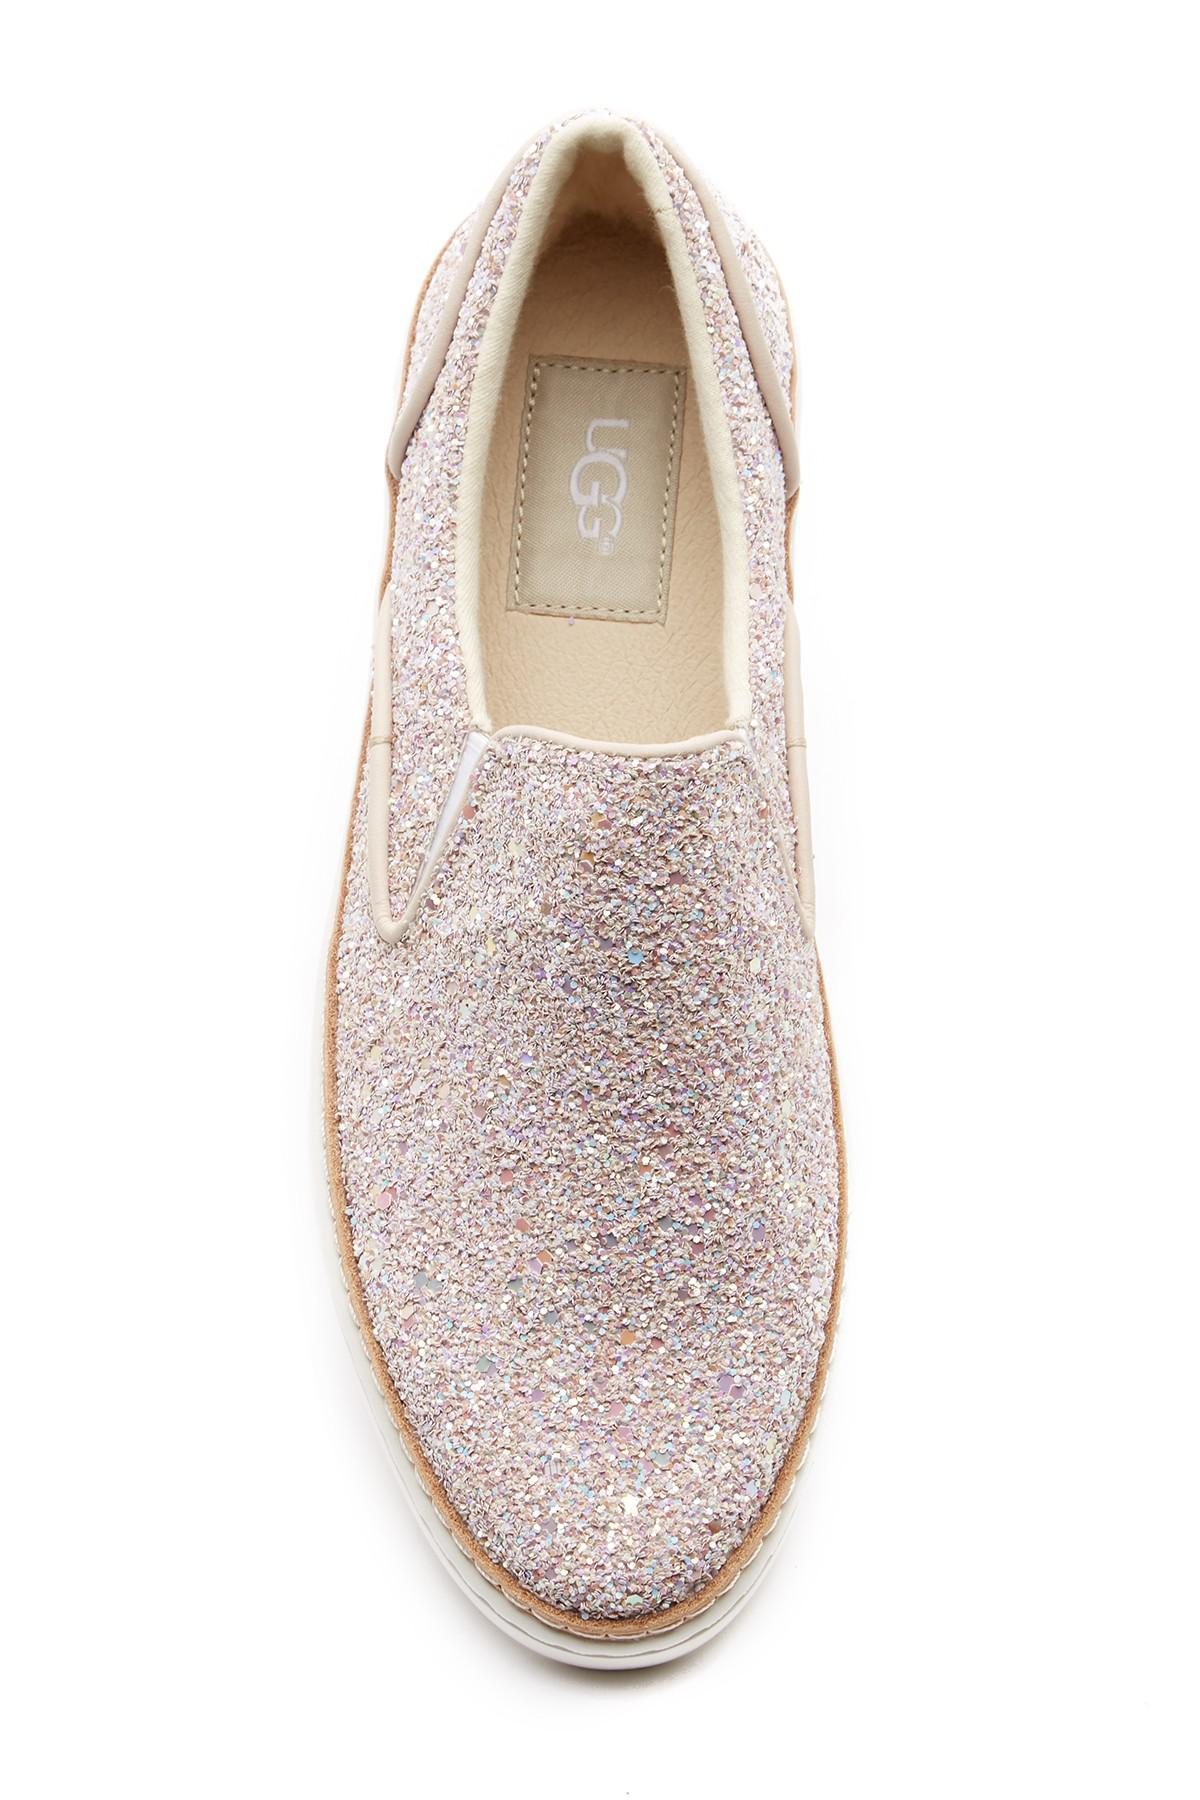 215ef10ff78 Ugg Multicolor Adley Chunky Glitter Slip-on Sneaker